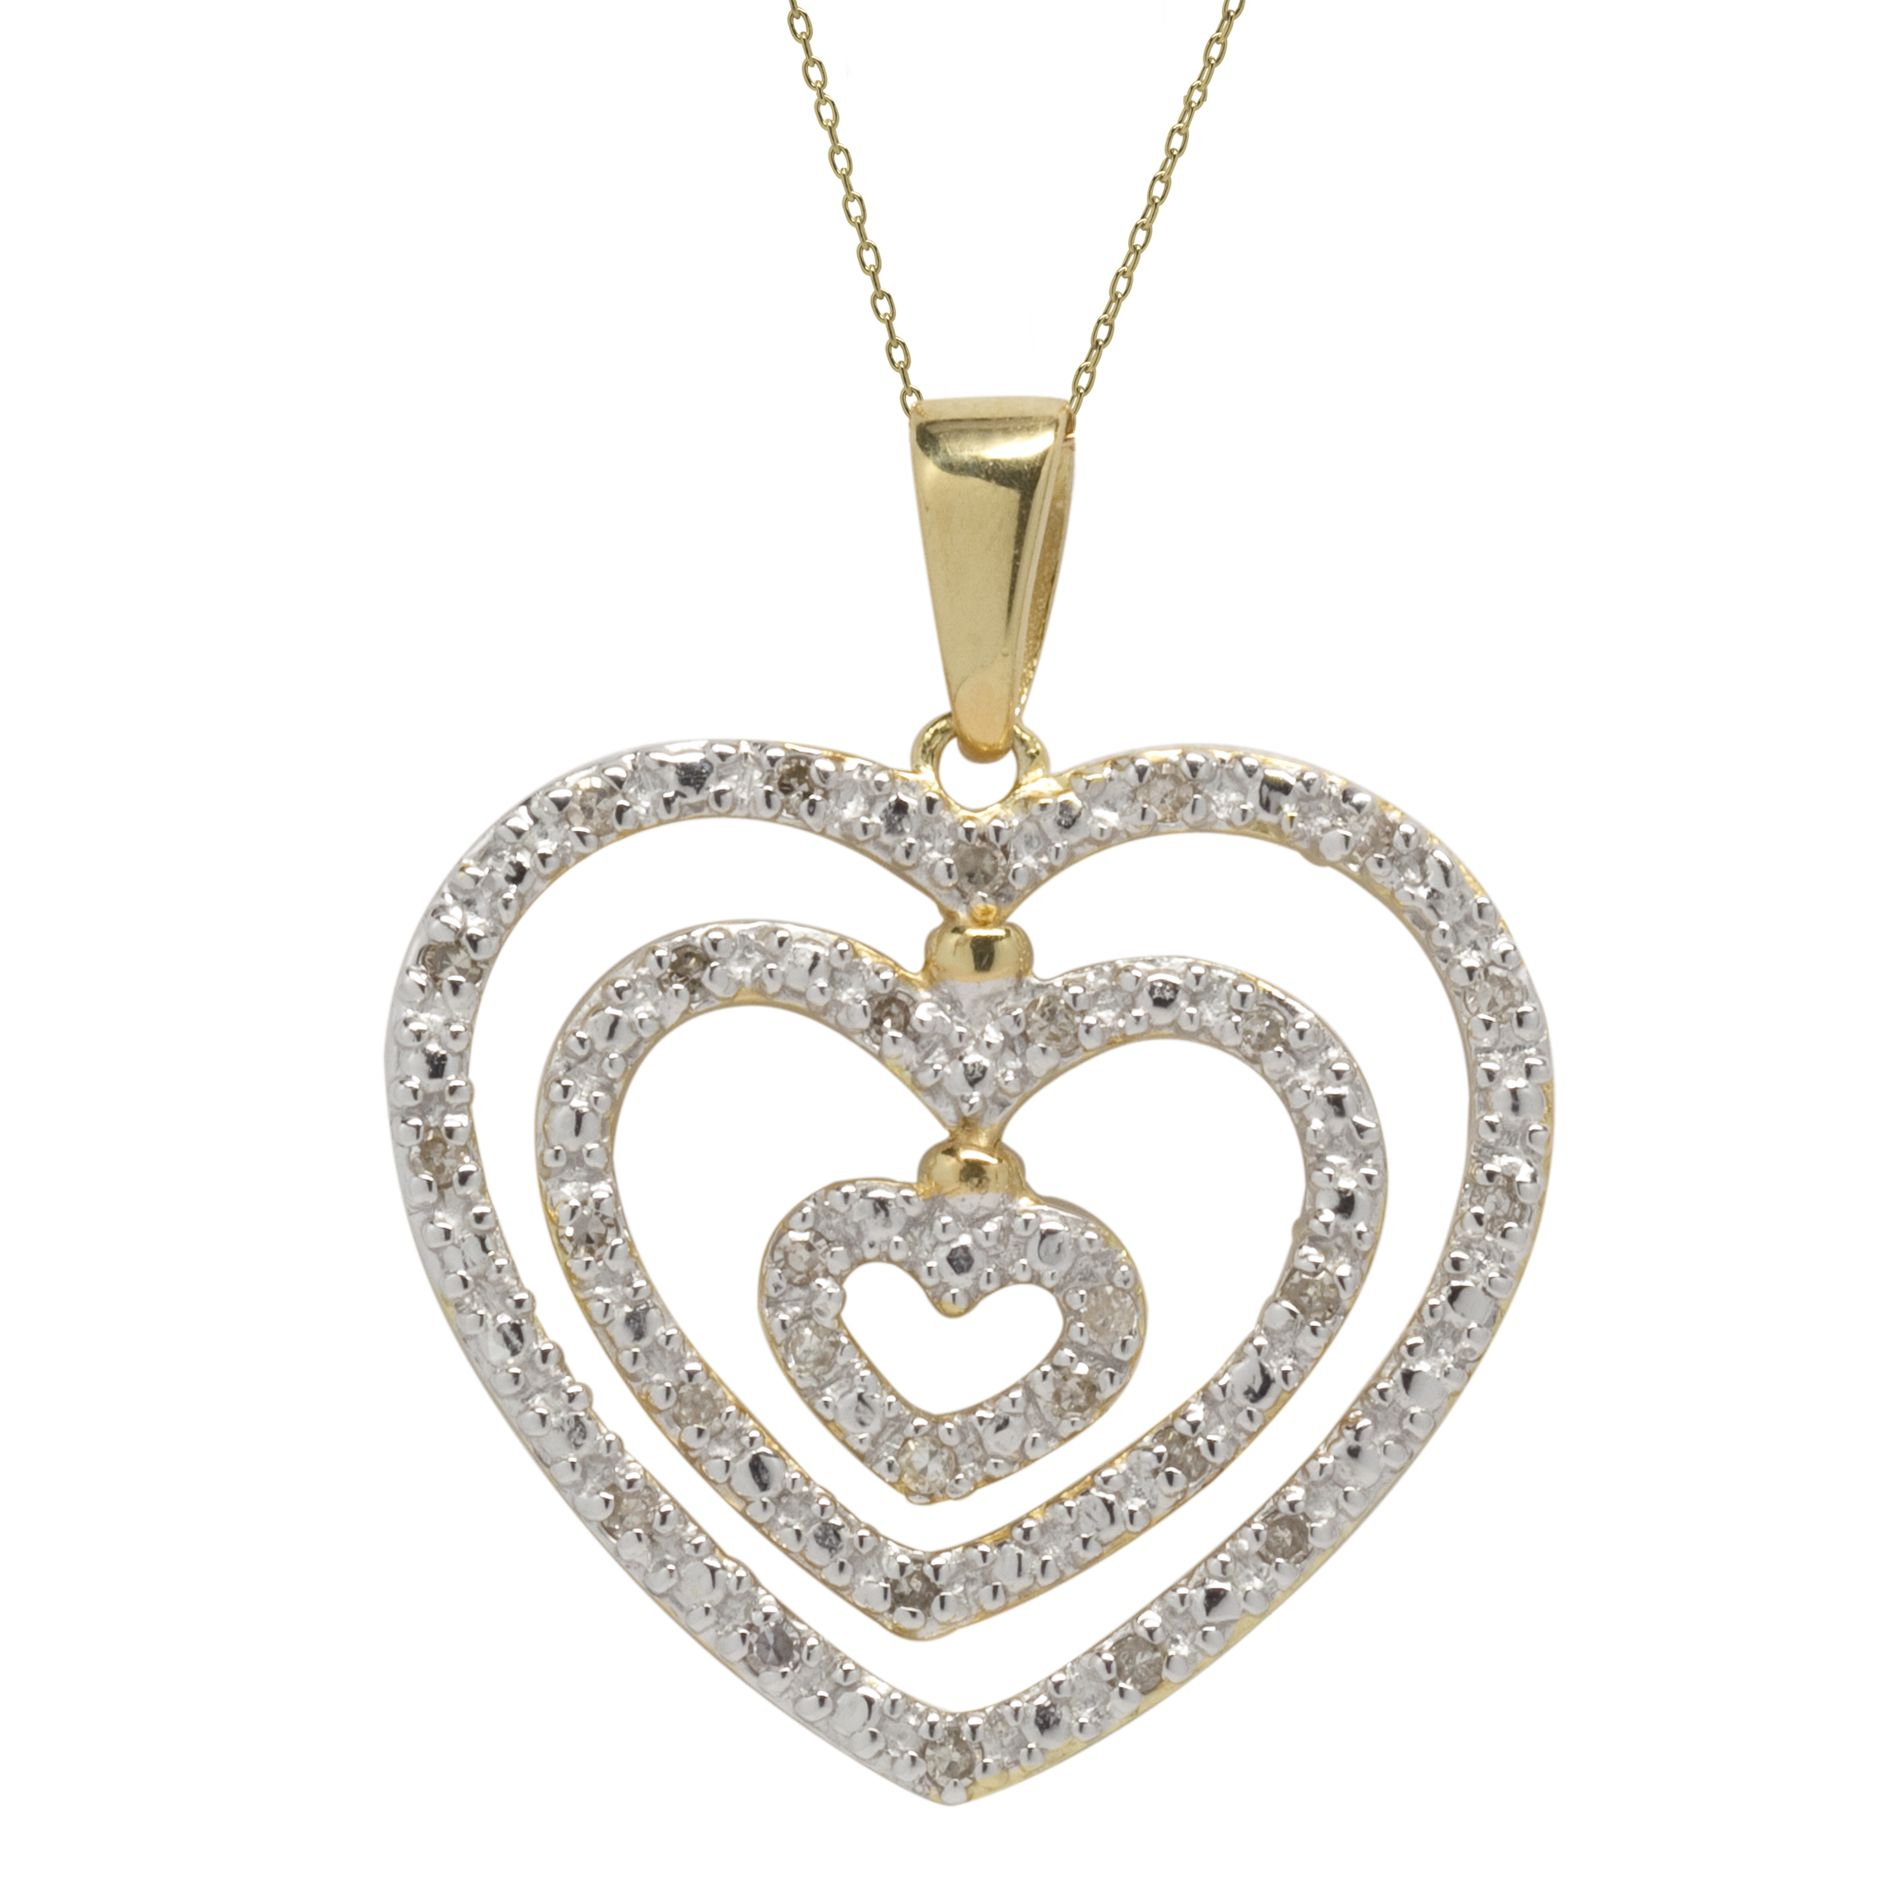 1/5cttw Diamond Heart Pendant 18k Gold